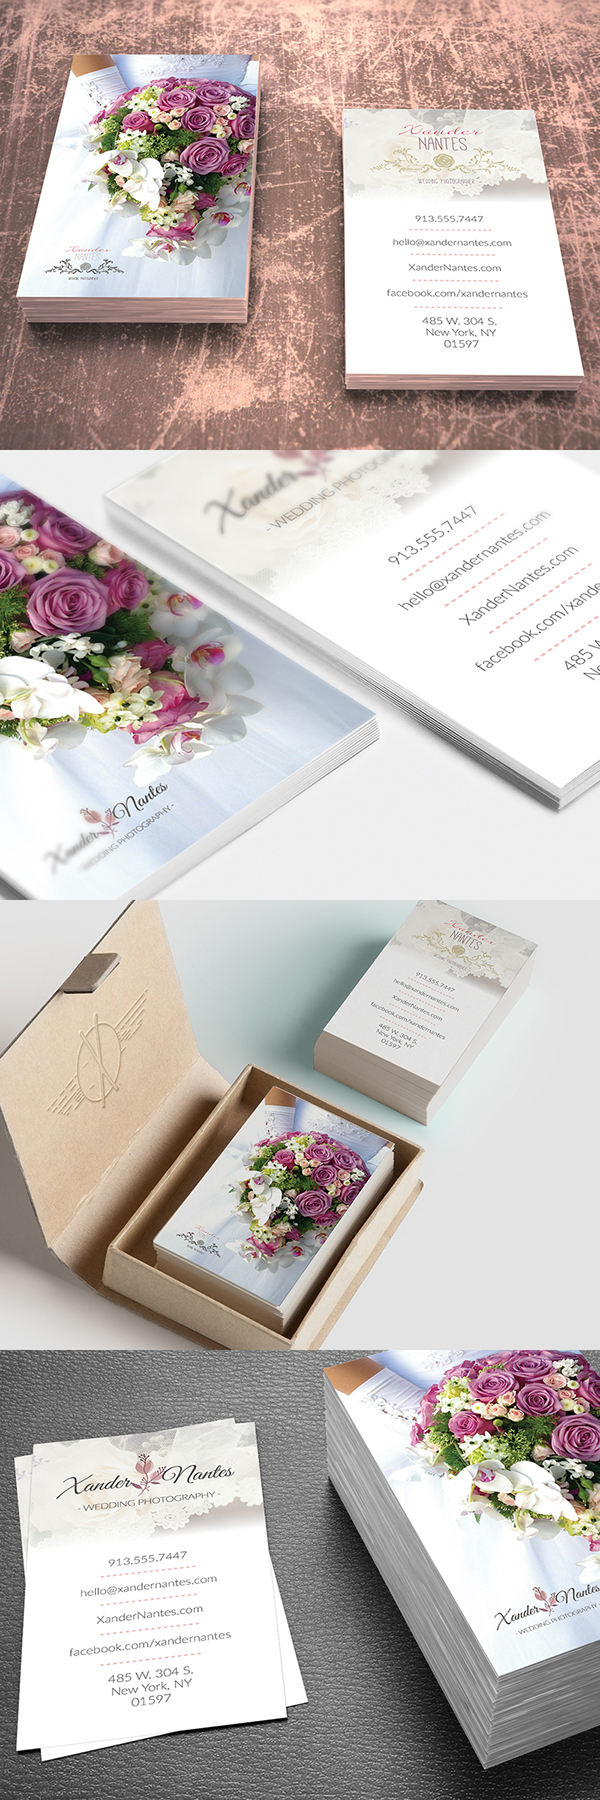 Wedding Photographer Business Card Photoshop Template on Behance